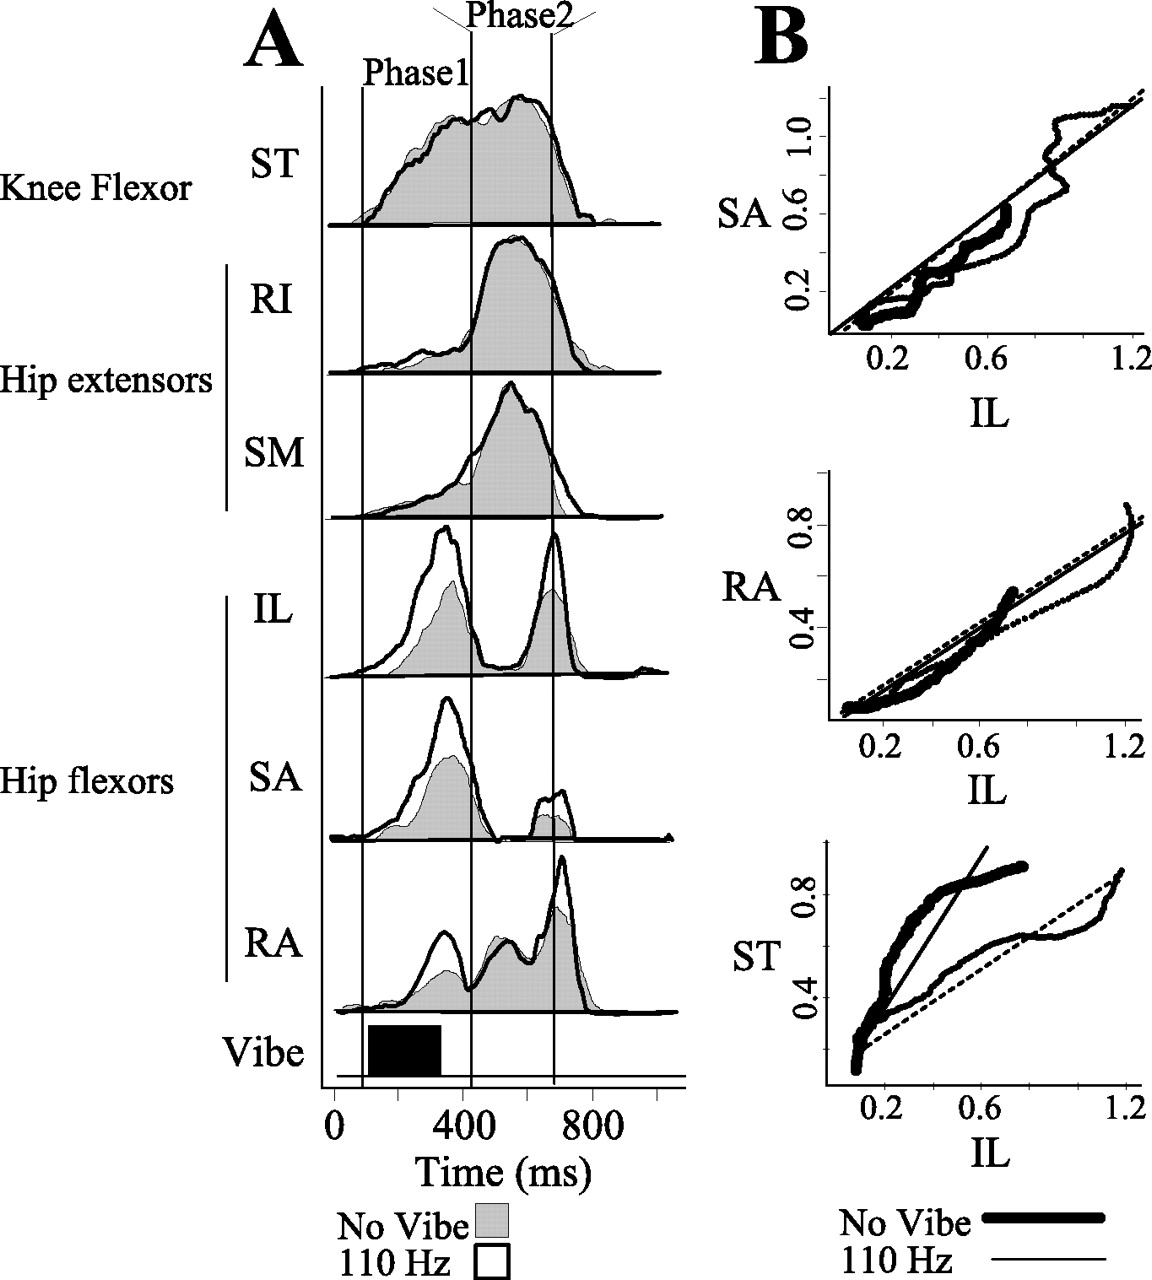 Individual Premotor Drive Pulses, Not Time-Varying Synergies, Are